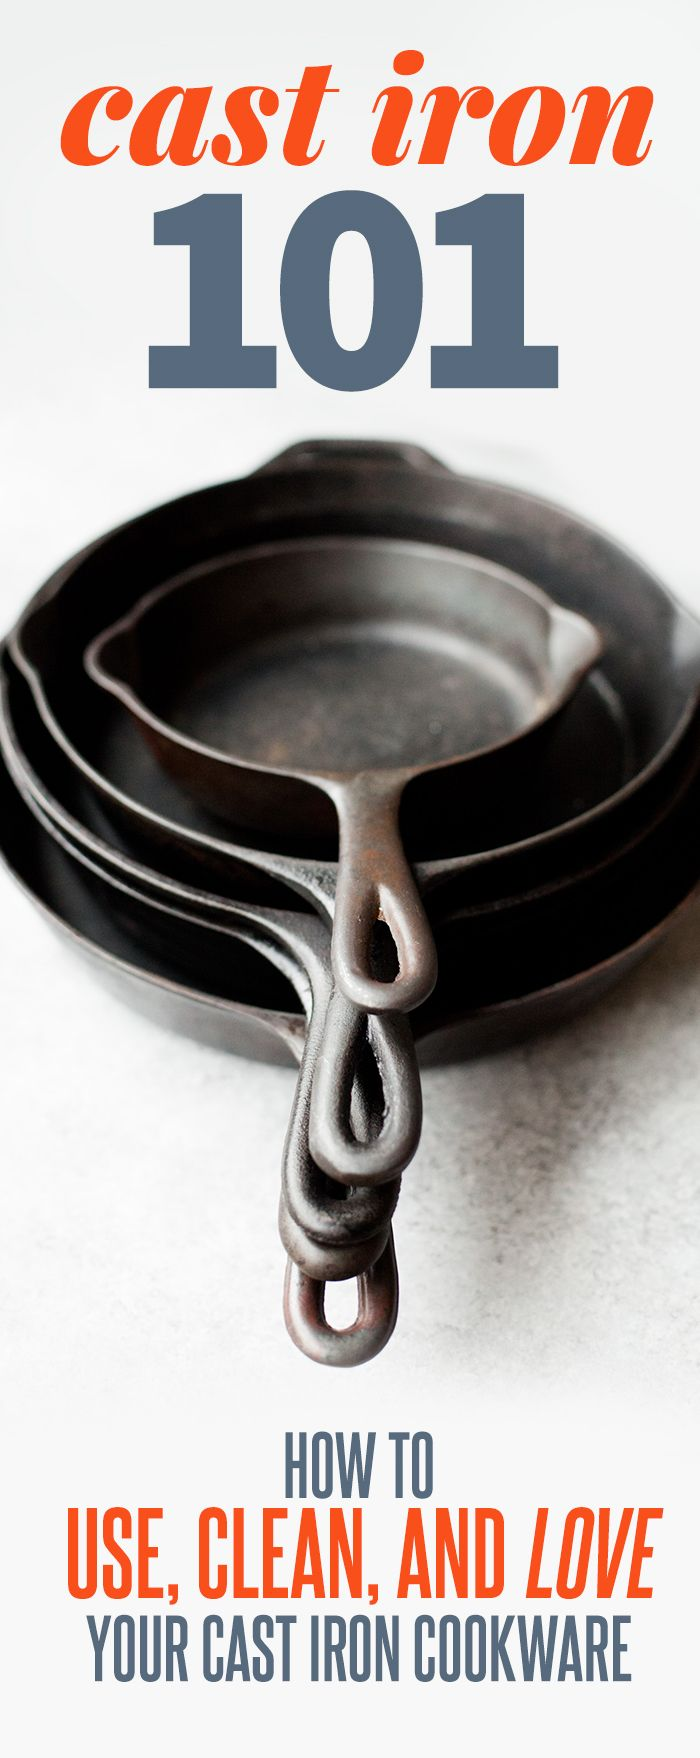 Cast Iron 101: How to Use, Clean, and Love Your Cast Iron Cookware